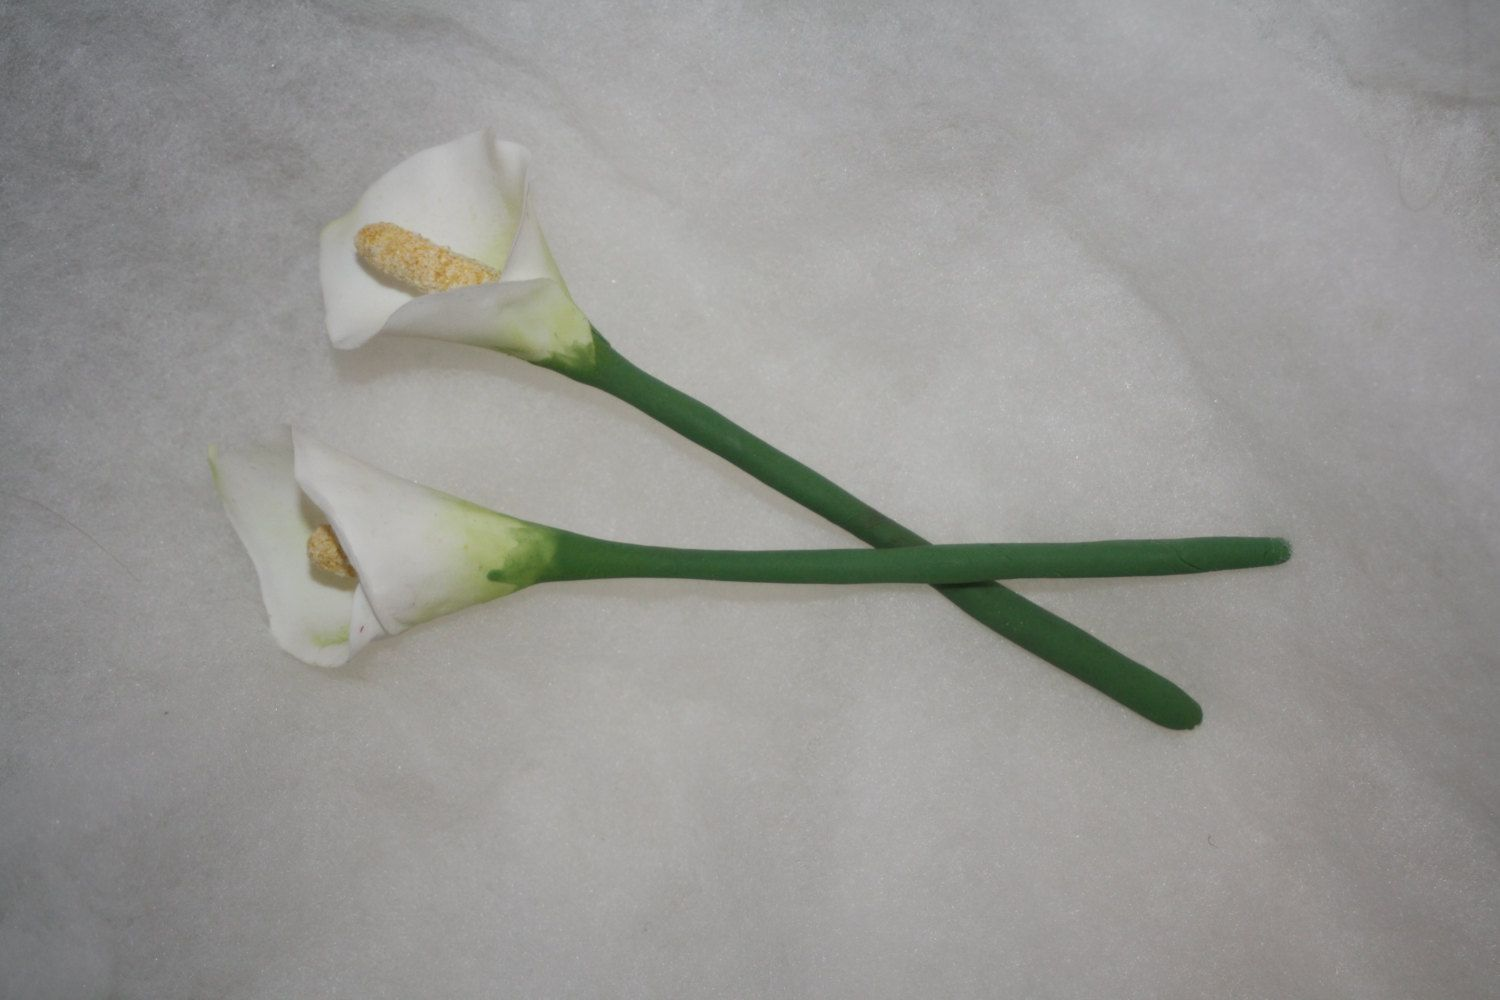 Calla Lily Flower By Foreverflowersplus On Etsy Now For Sale In Your Choice Of Colors And In 4 Sizes Come Check It Out Today Lily Flower Calla Lily Calla